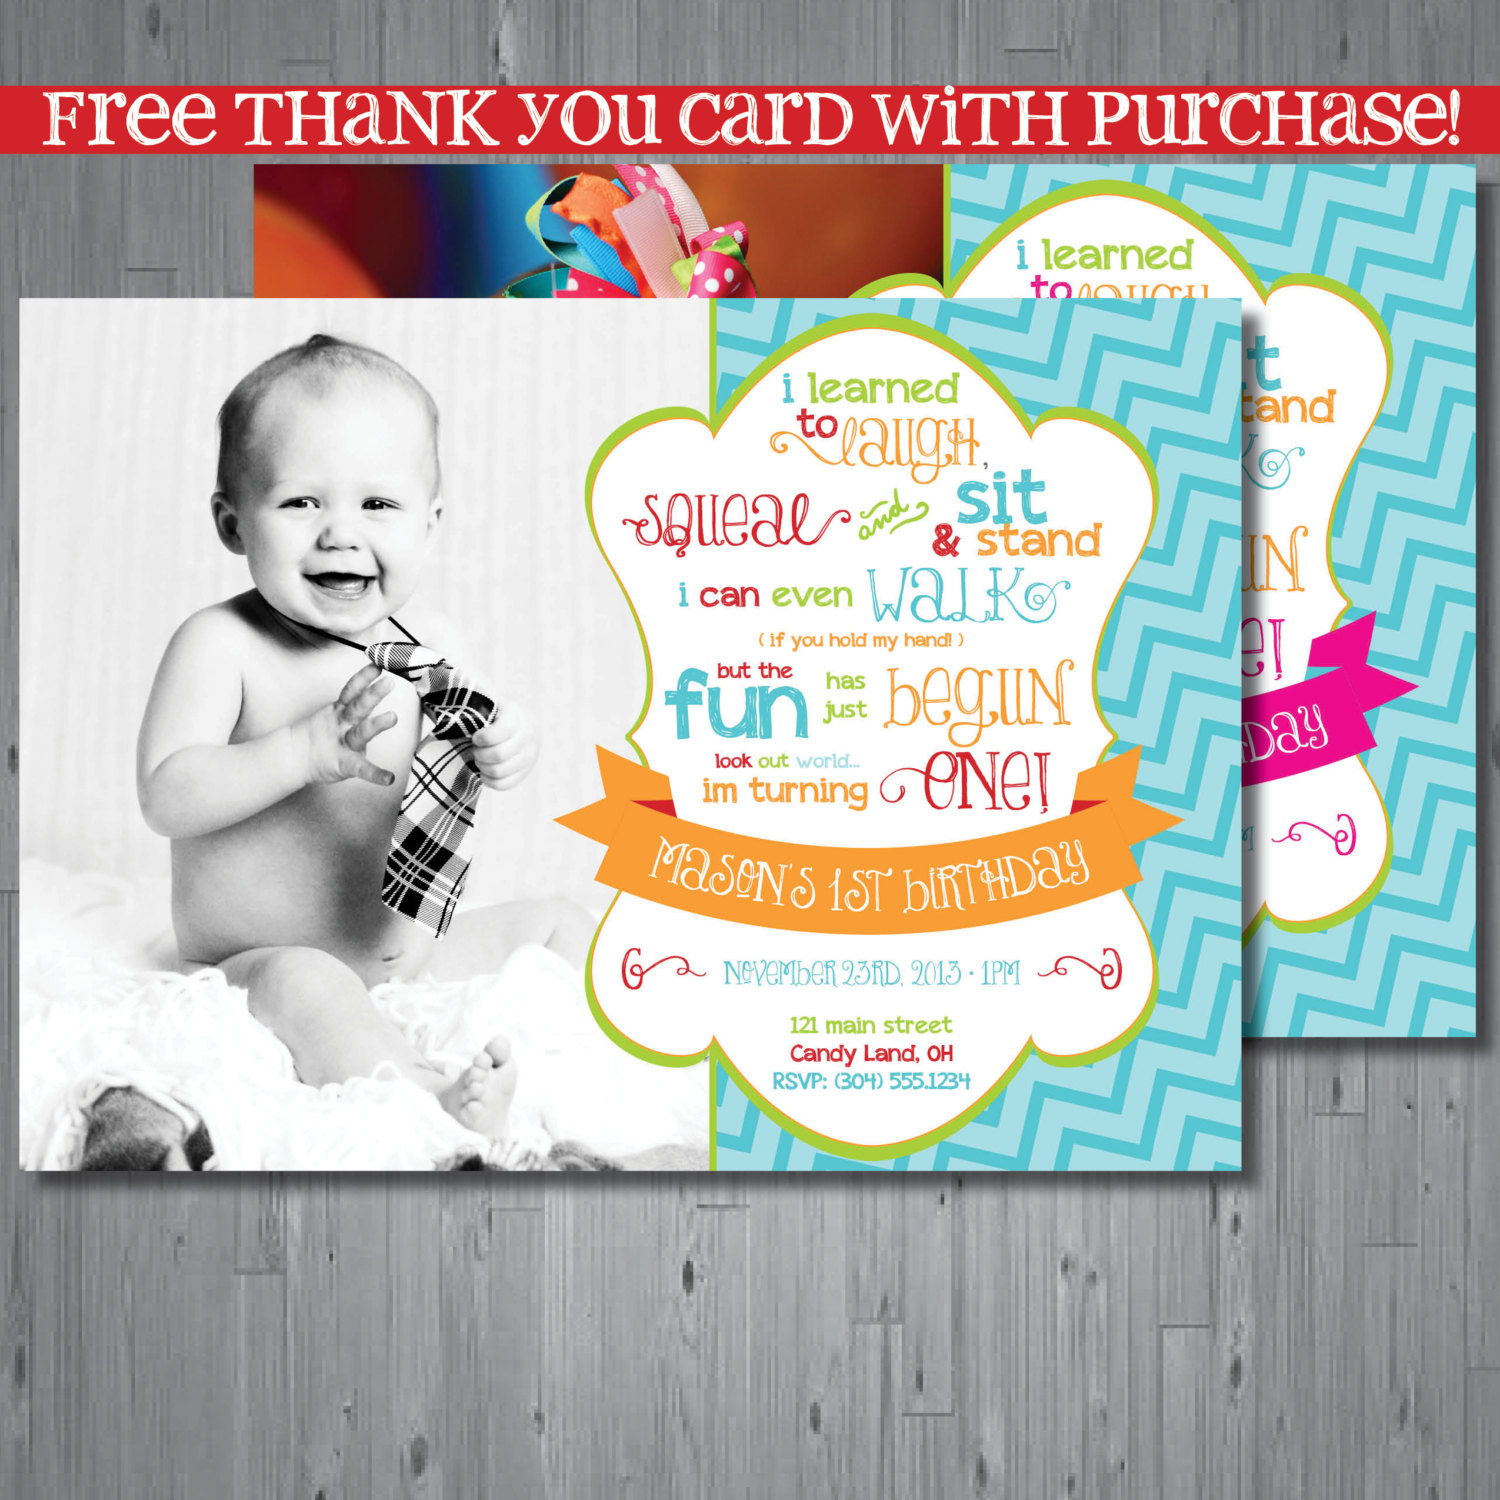 birthday thank you poem ; 1st-birthday-party-thank-you-card-wording-1st-birthday-thank-you-card-wording-to-get-ideas-how-to-make-your-own-birthday-card-design-6